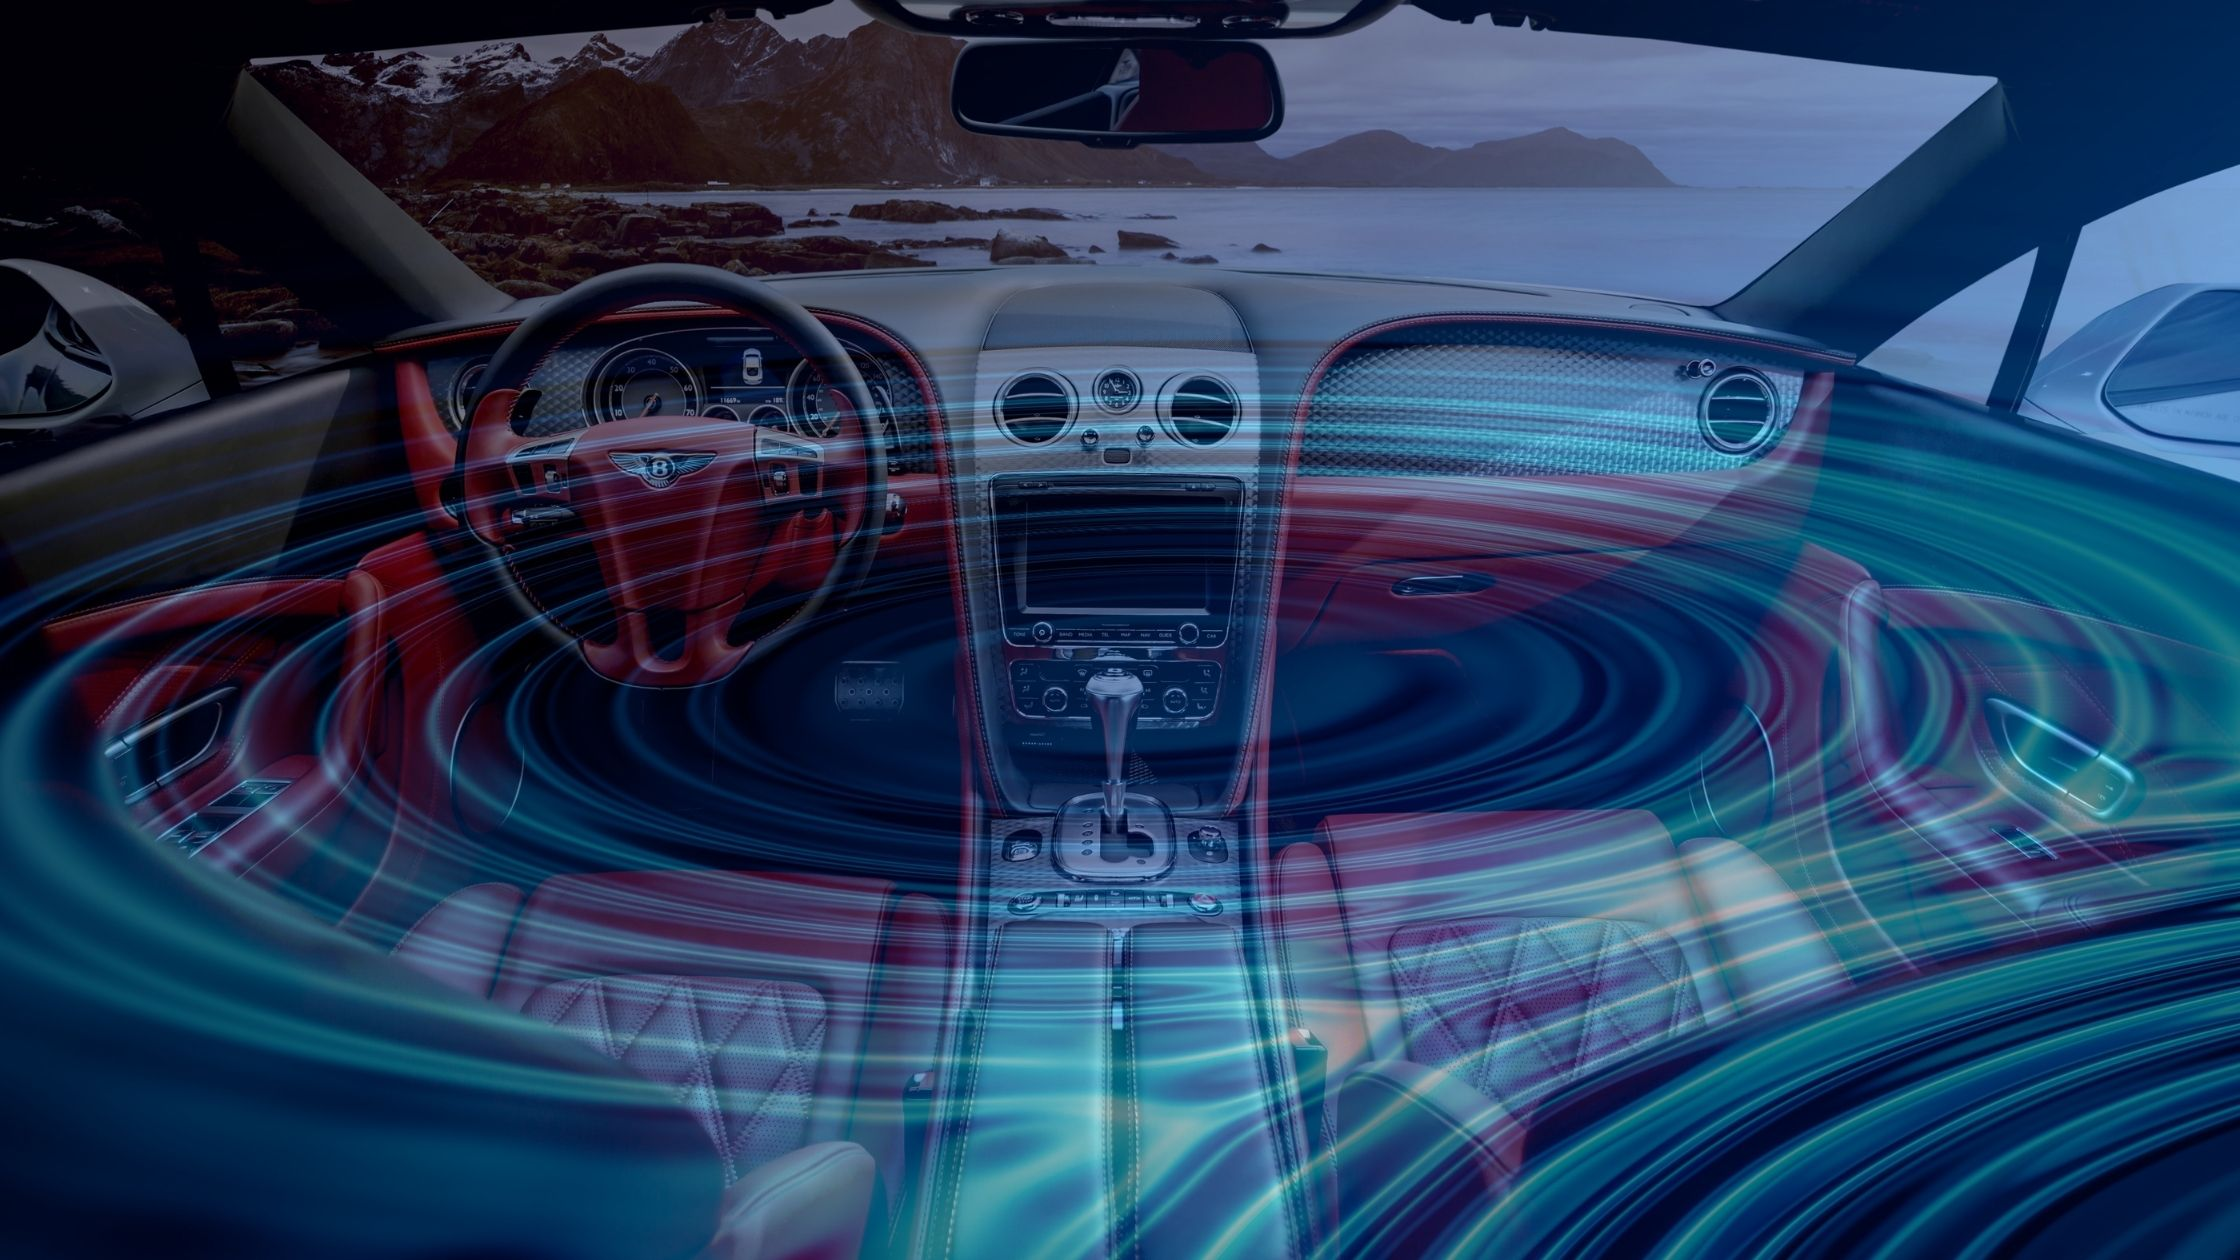 Are you listening carefully? - How to reduce vehicle noise, vibration and harshness.